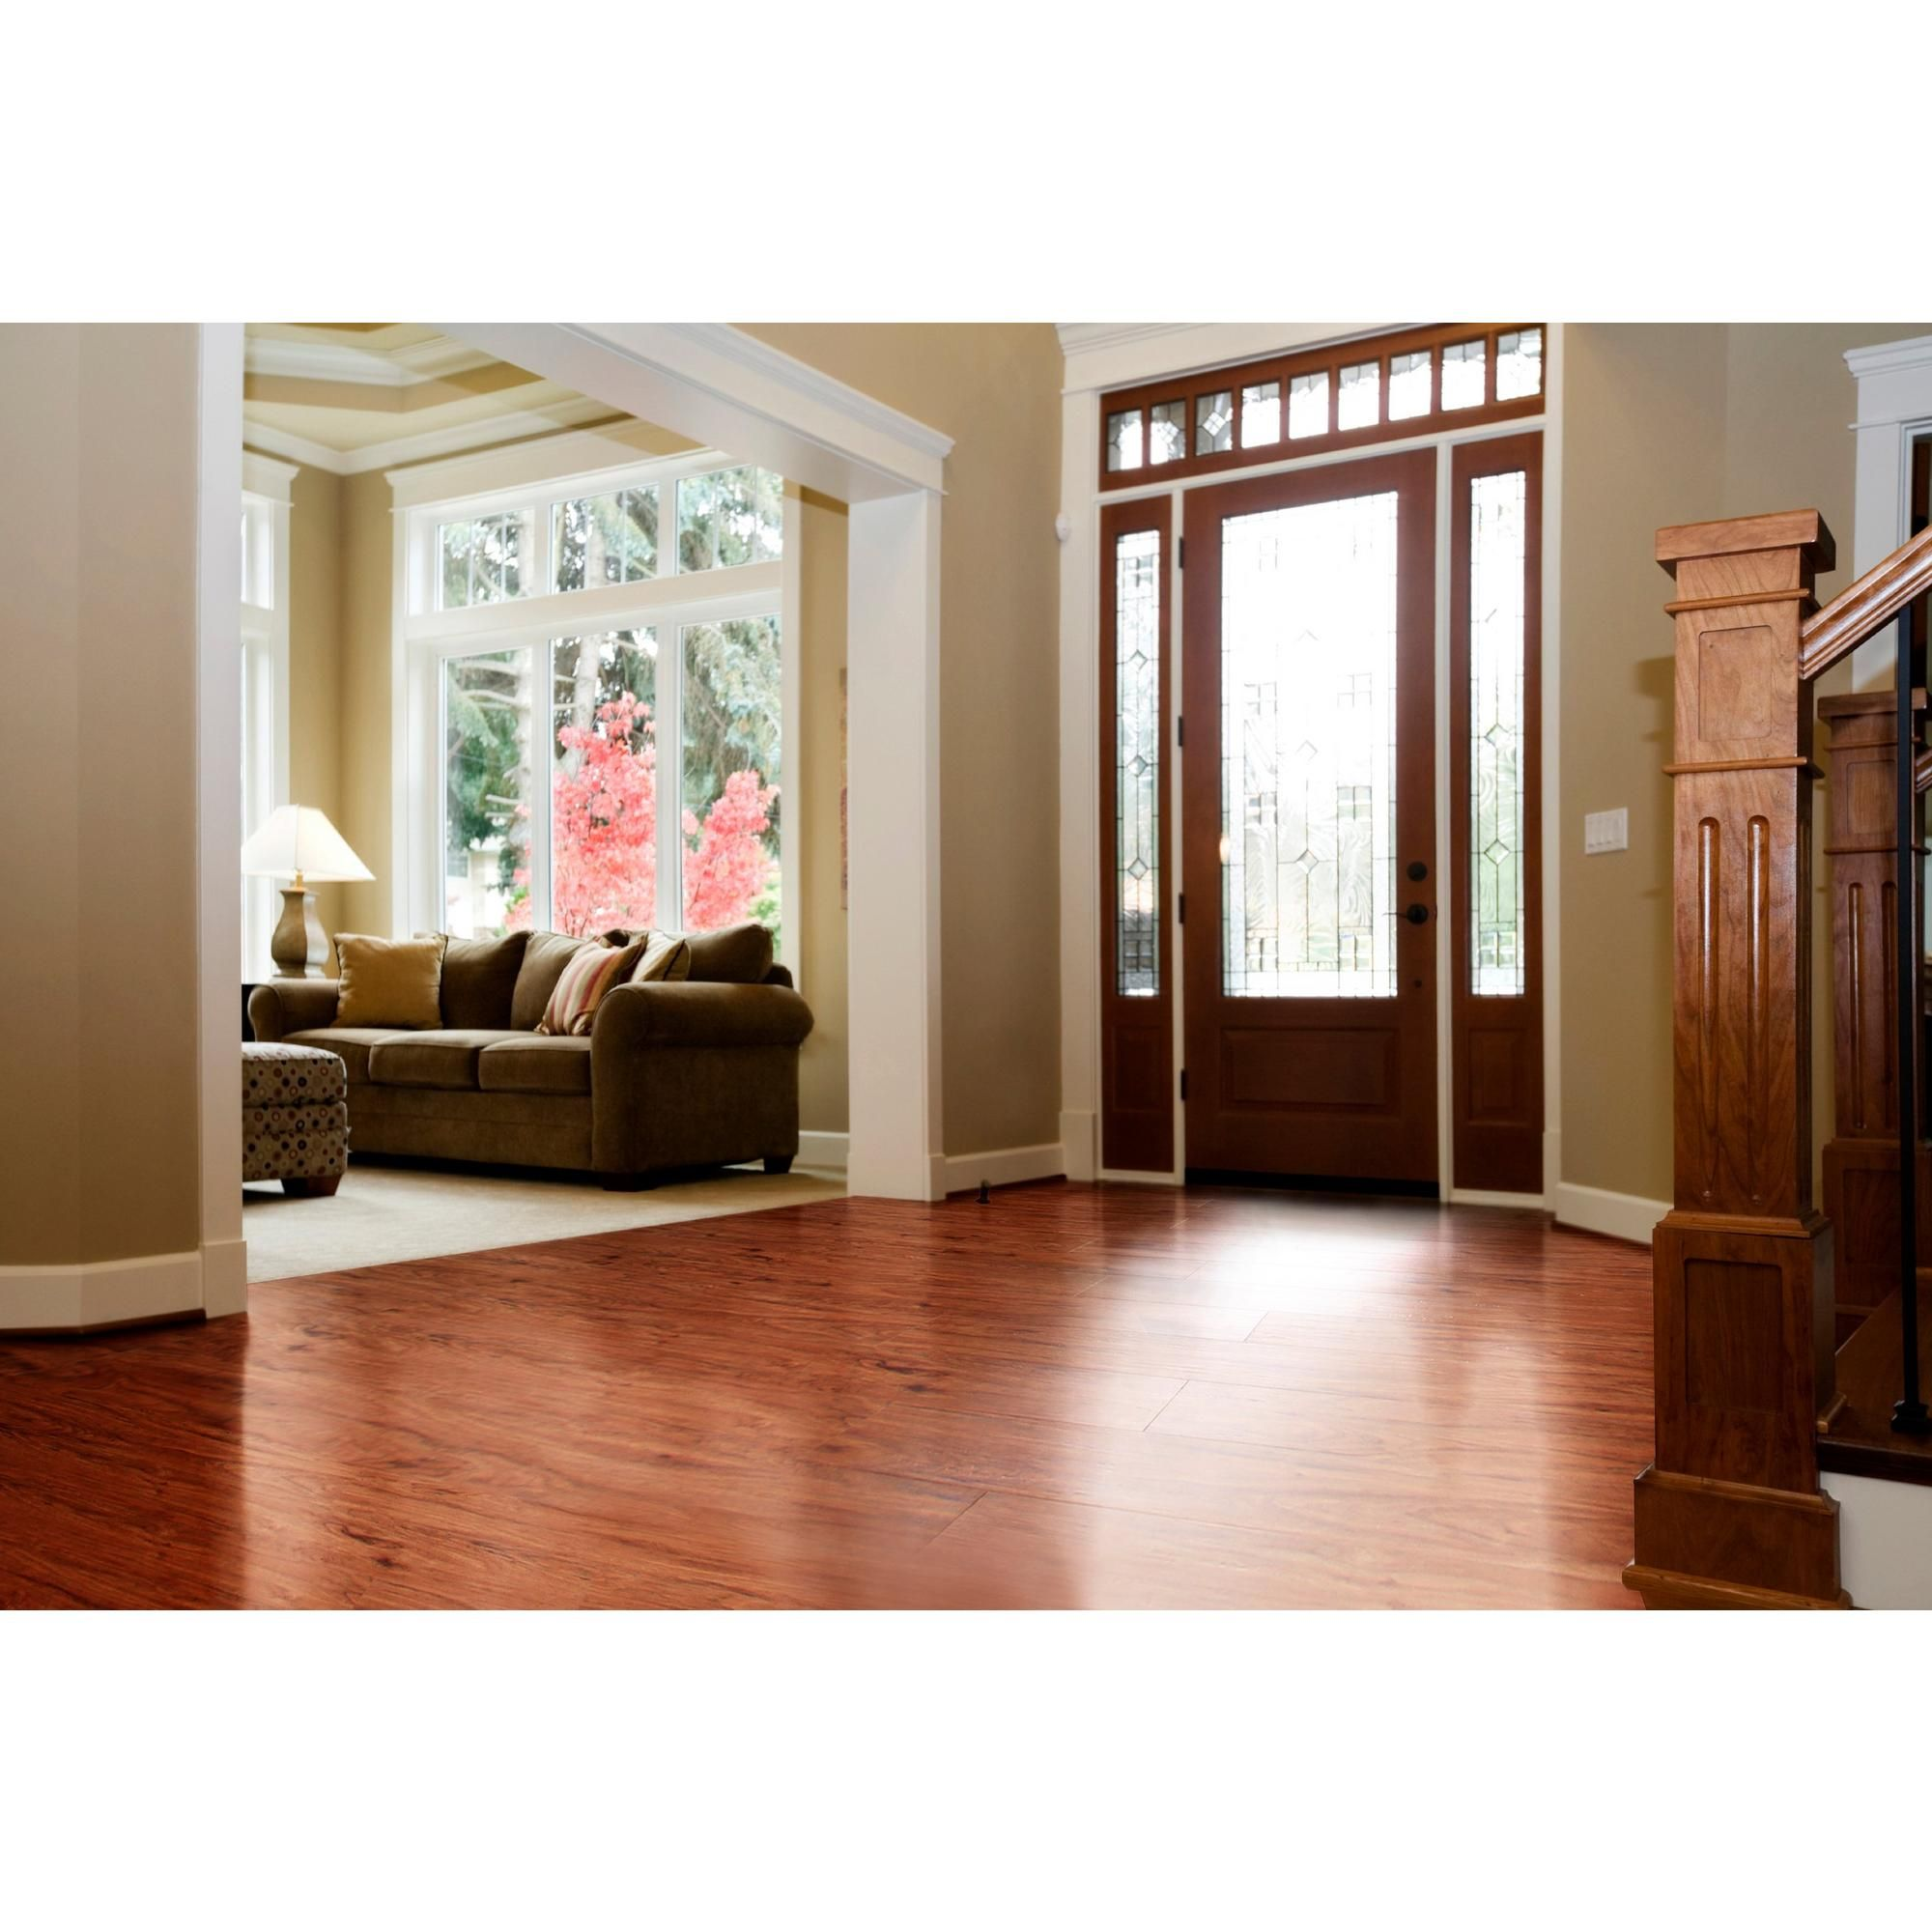 Nucore Sunset Hickory Hand Sed Plank With Cork Back 6 5mm 100109776 Floor